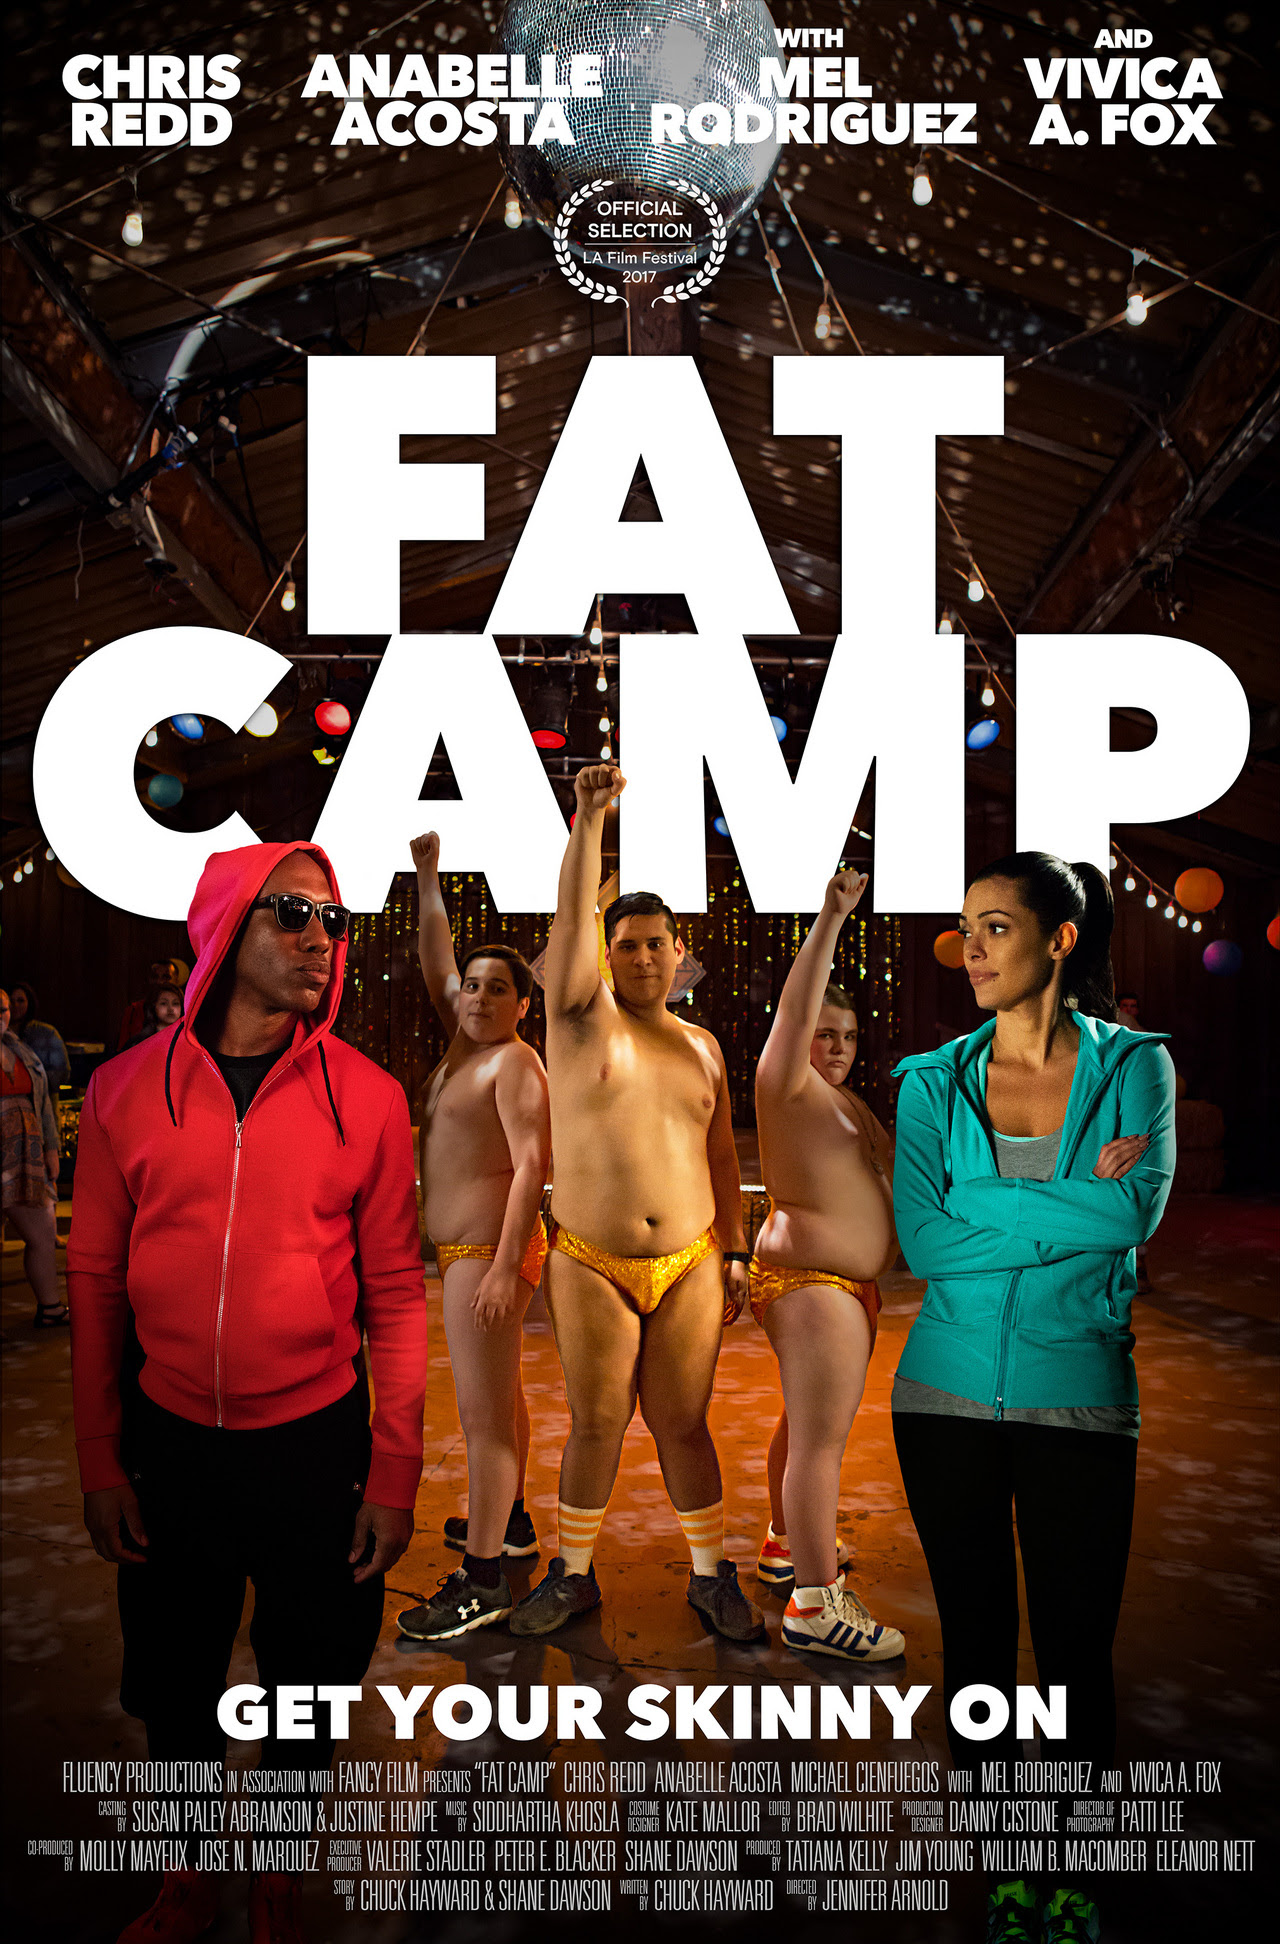 Chris Redd, Angela Ortíz, Anabelle Acosta Fat Camp